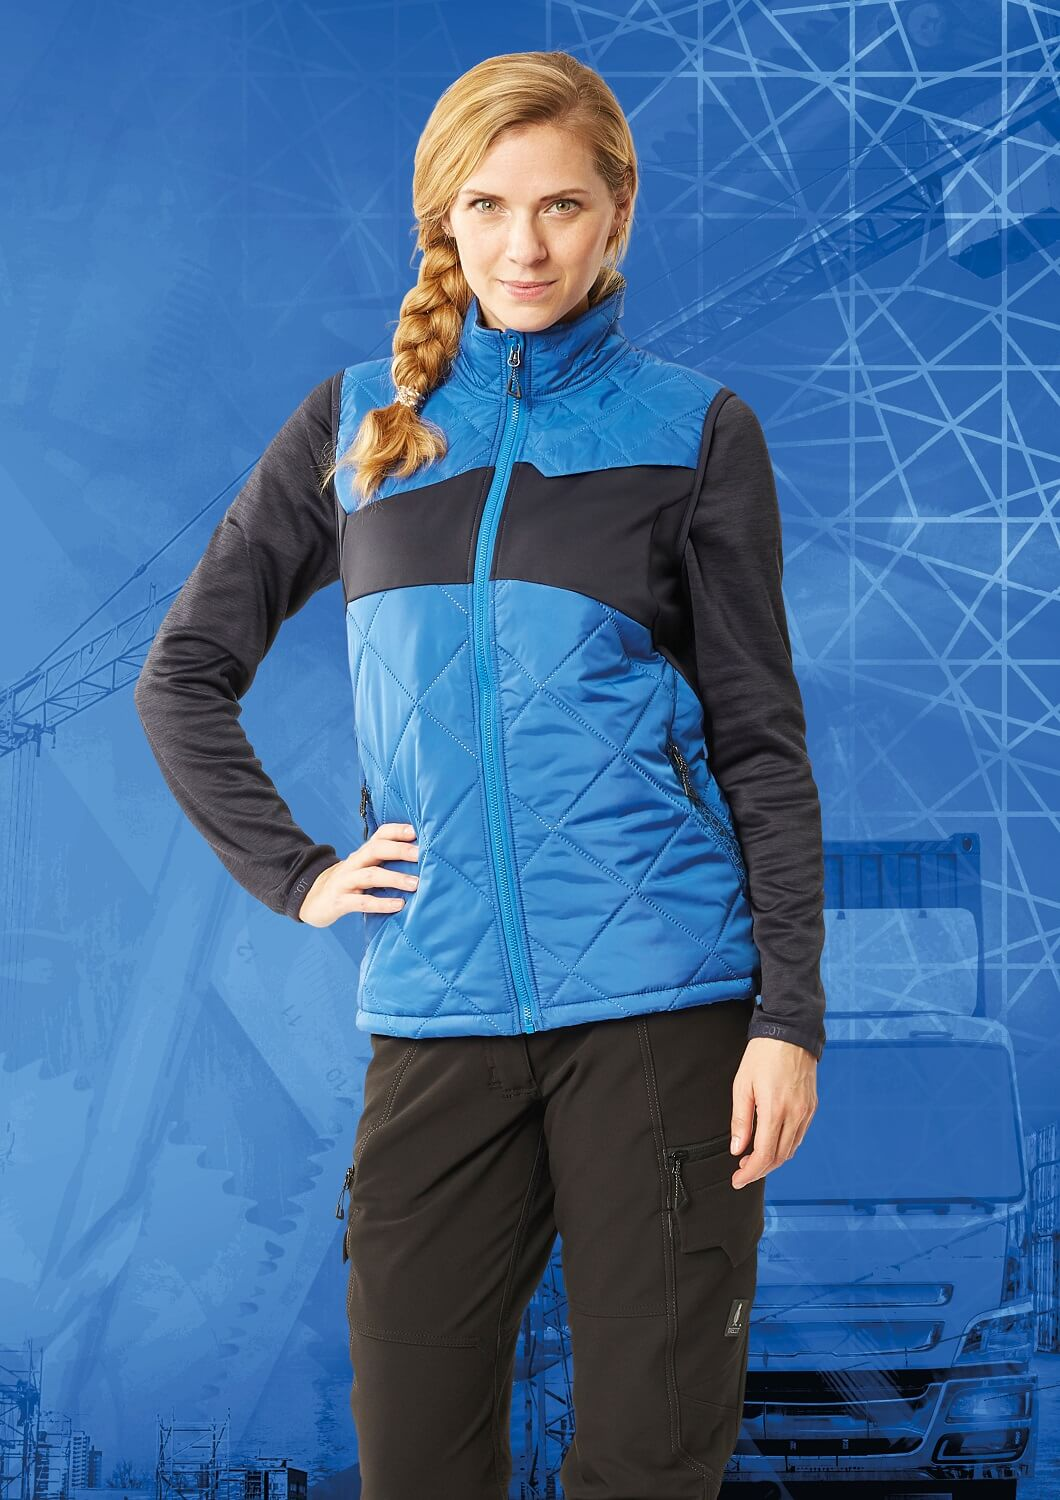 Gilet for women & Work Pants - MASCOT® ACCELERATE - Royal blue & Black